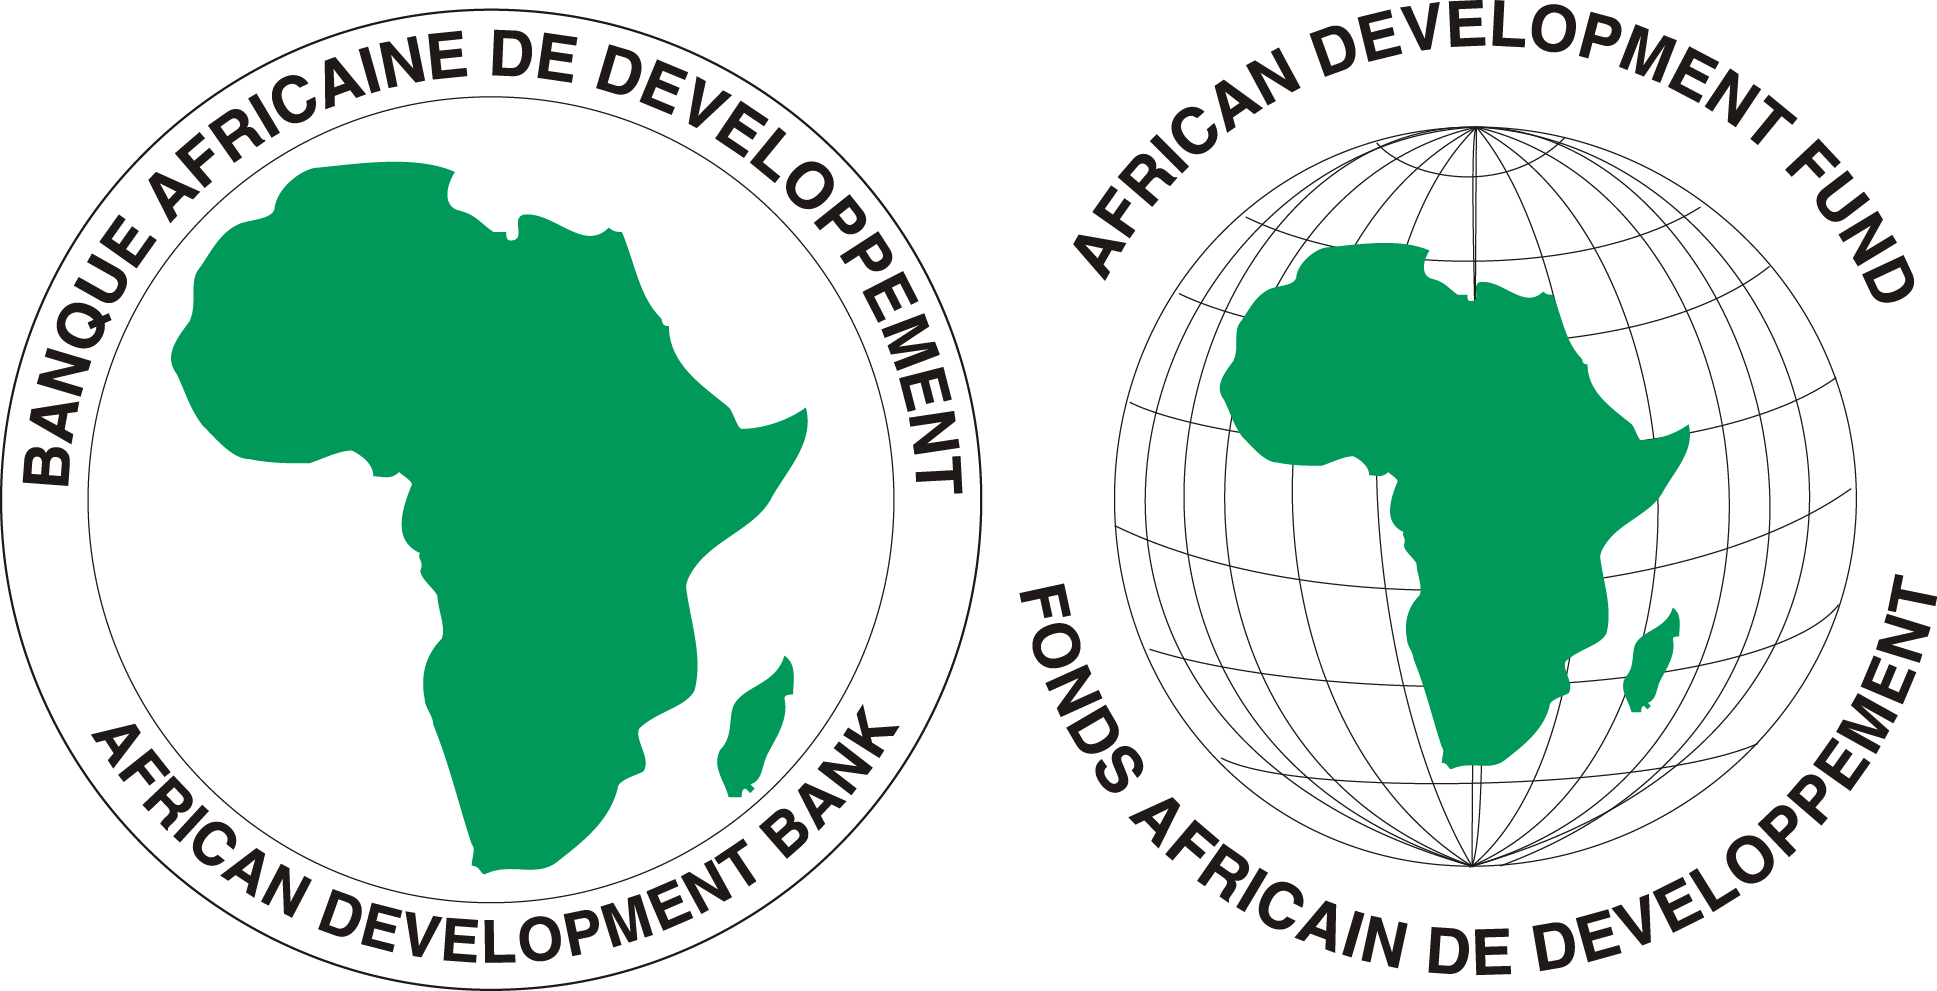 The African Development Bank (AfDB) confirms its partnership with the Second Edition of the Africa Innovation Summit to be held in Kigali 6-8 June 2018